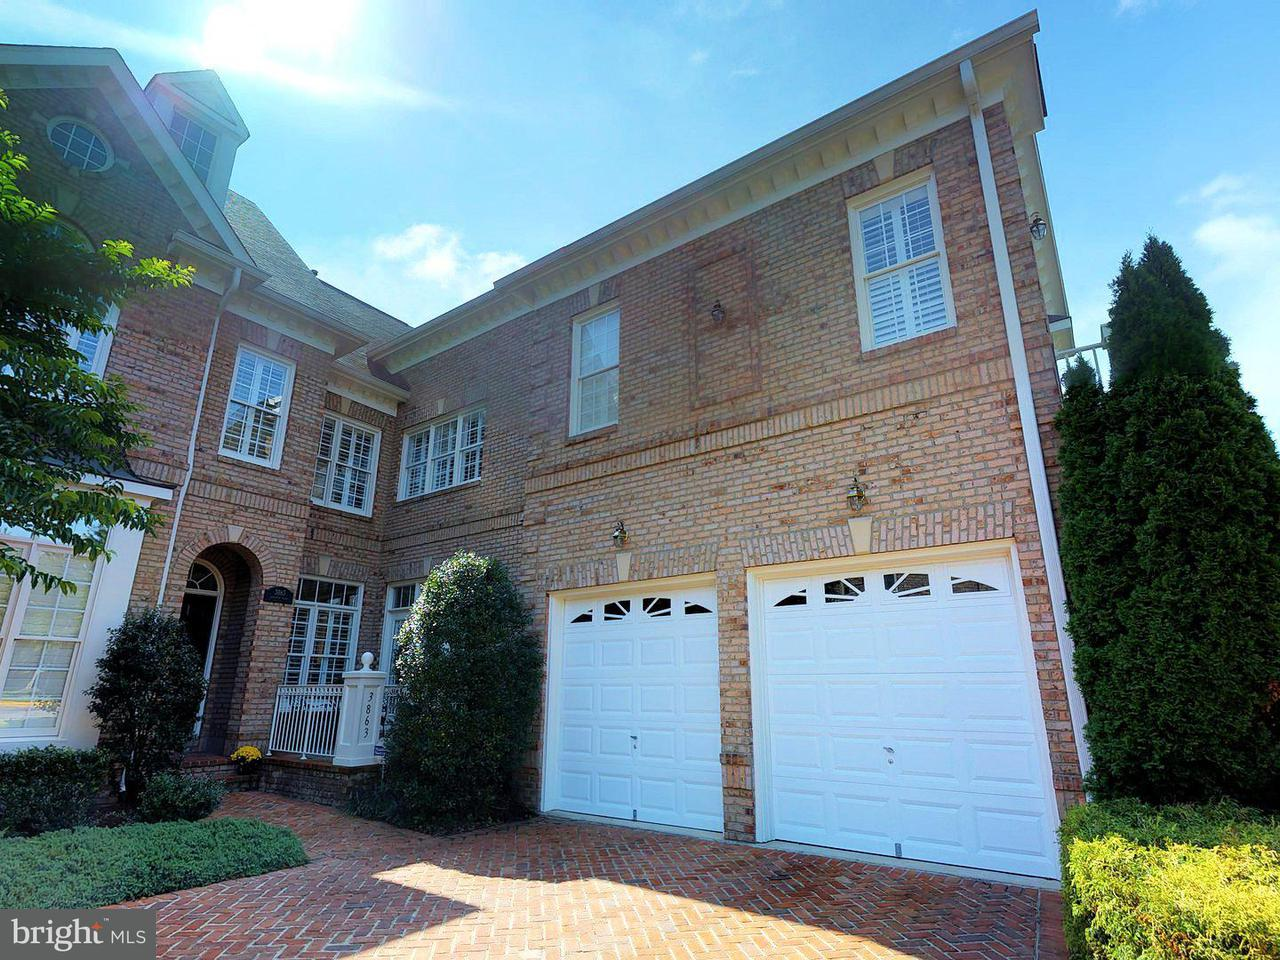 Additional photo for property listing at 3863 Lewiston Place 3863 Lewiston Place Fairfax, 弗吉尼亚州 22030 美国